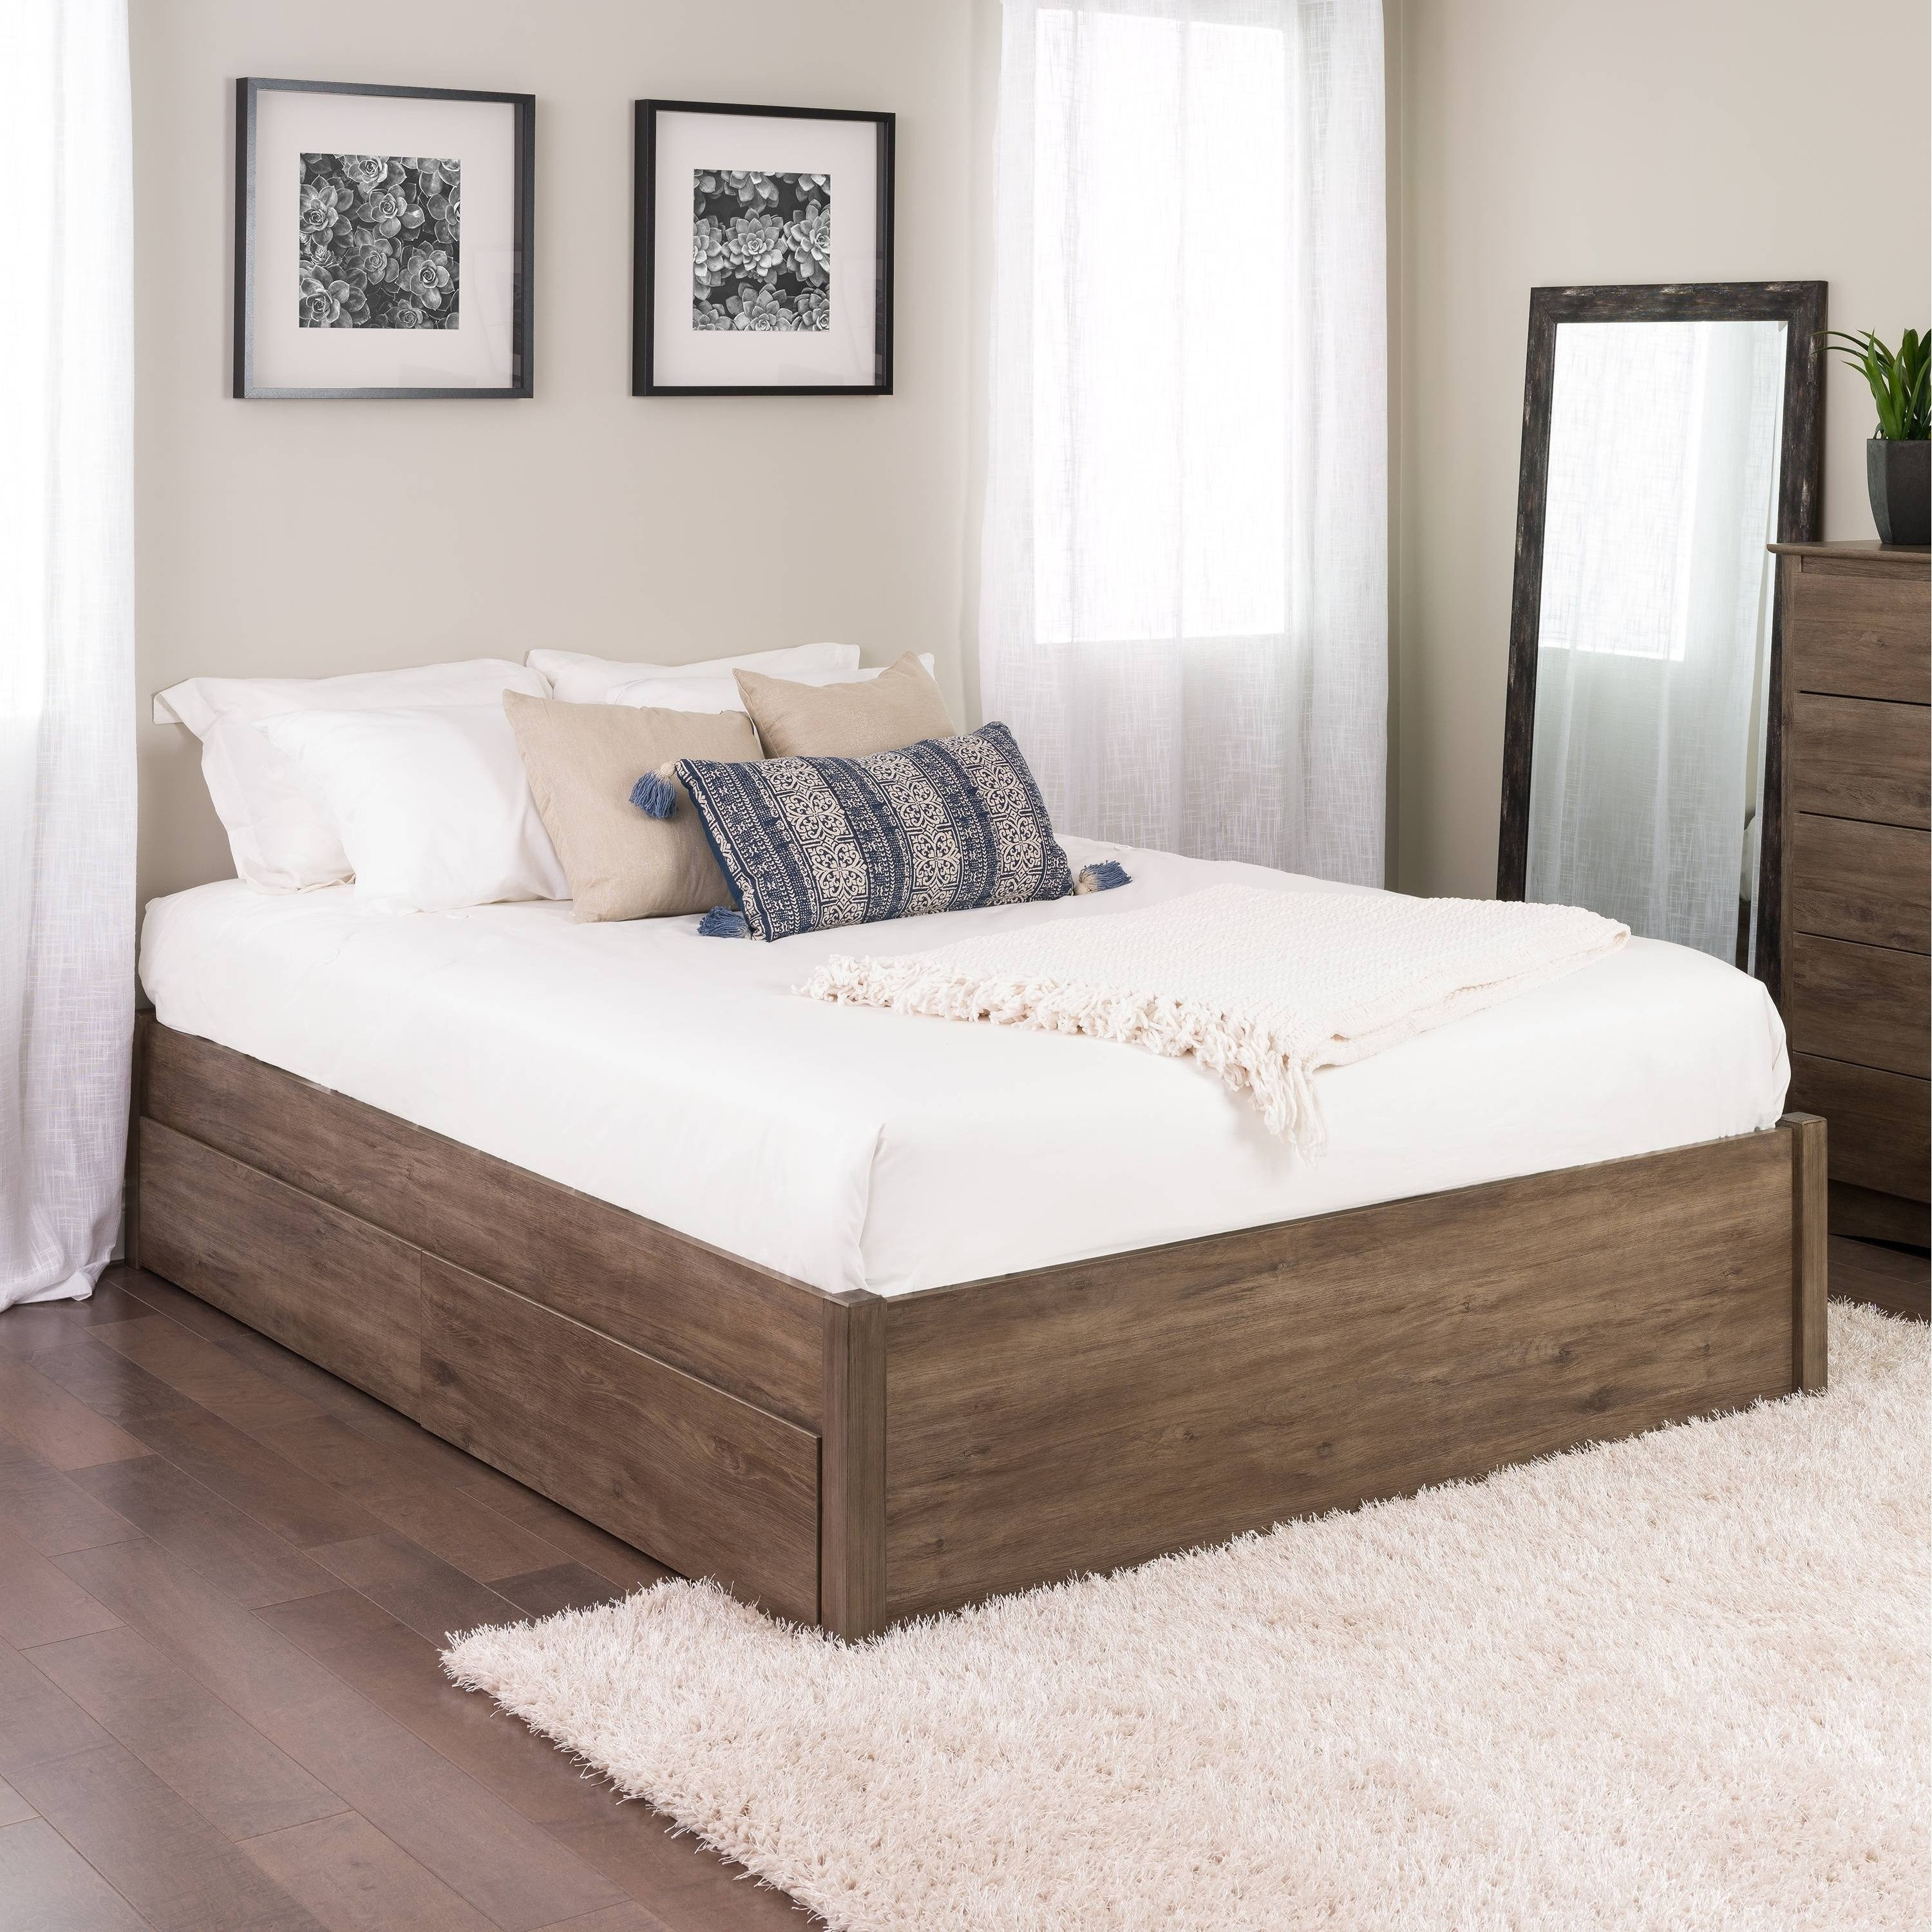 Rooms to Go Bedroom Set King Beautiful Prepac Queen Select 4 Post Platform Bed with Optional Drawers